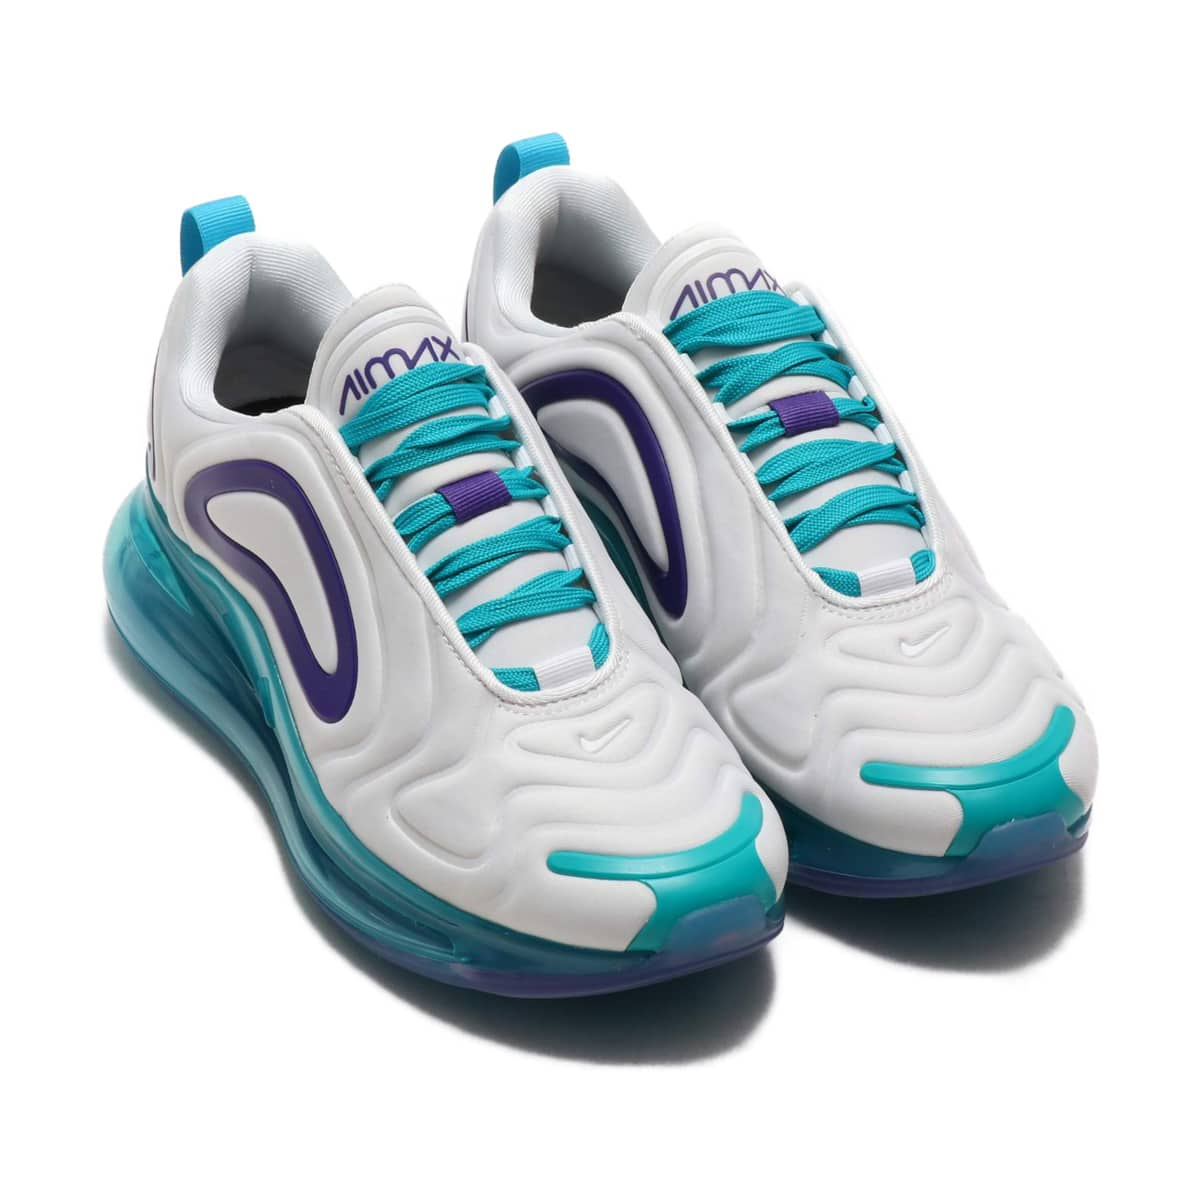 NIKE W AIR MAX 720 WHT/CRT PRPL-SPRT TL-LT BL FRY 19SU-S_photo_large